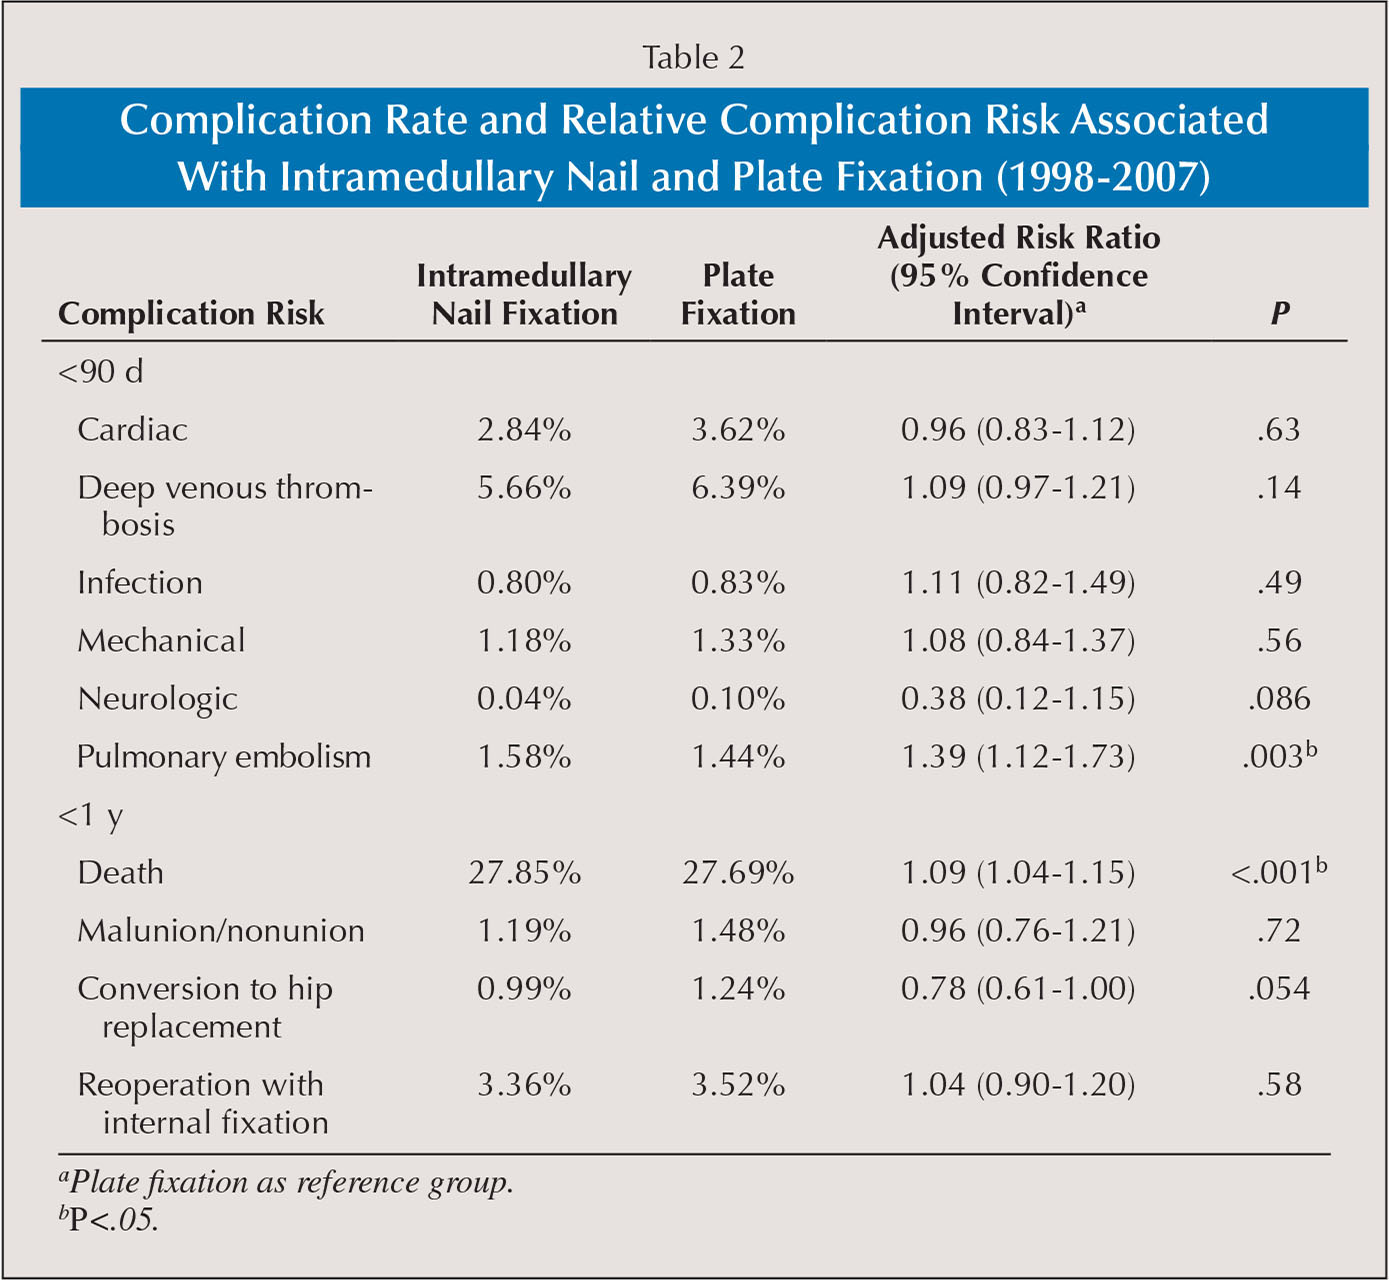 Complication Rate and Relative Complication Risk Associated With Intramedullary Nail and Plate Fixation (1998–2007)